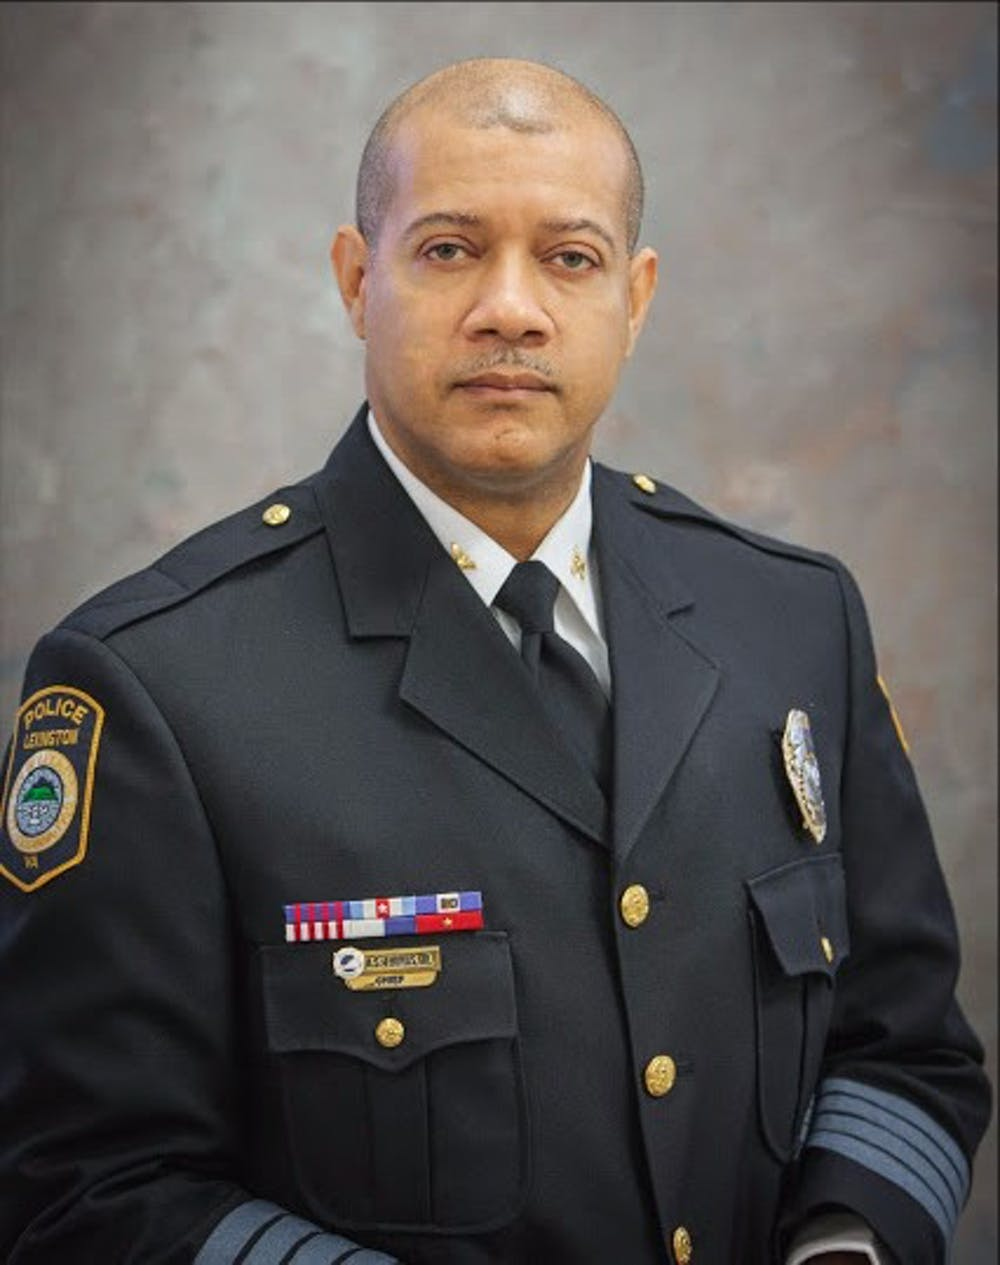 <p>Thomas has served as the chief of police in Lexington, Va., since 2010. As chief, he orchestrated numerous initiatives in the city including operational reorganization, updates to emergency communication systems, expanded outreach to city youth and a junior police academy.</p>